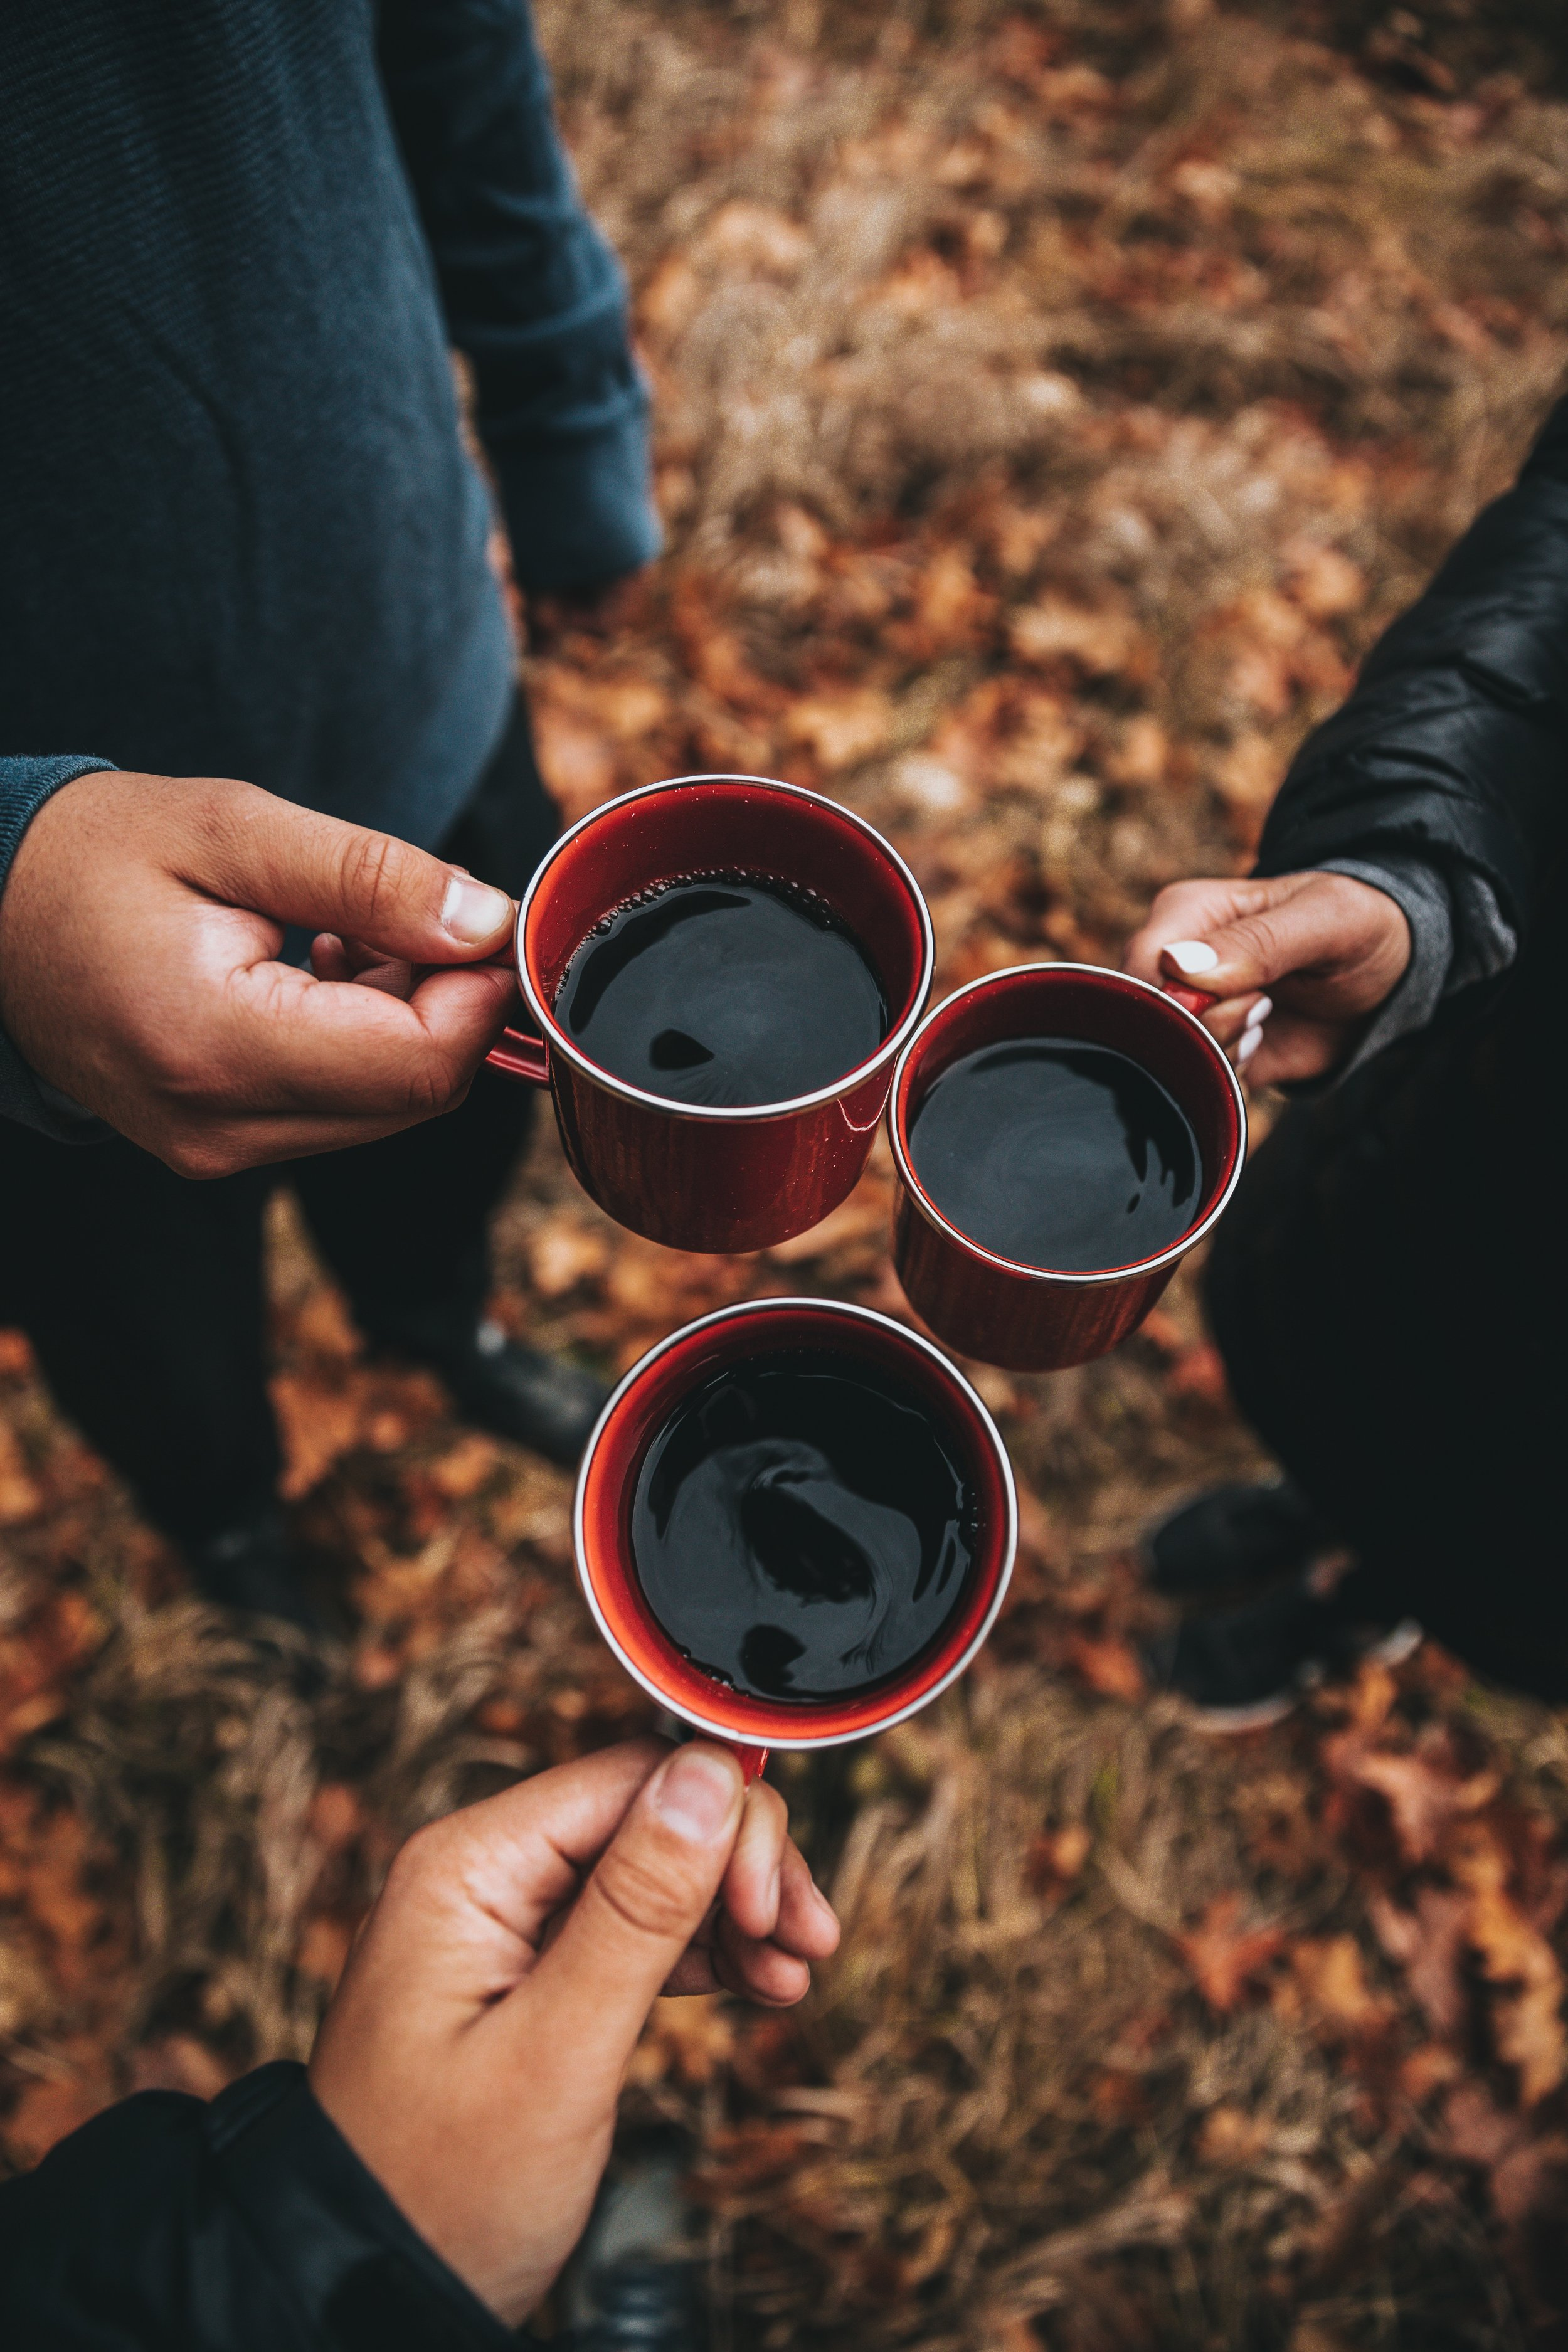 Join us for coffee or tea and a sweet bite before services. Sundays from 10:00 to 10:25 AM downstairs. Complimentary for all newcomers!